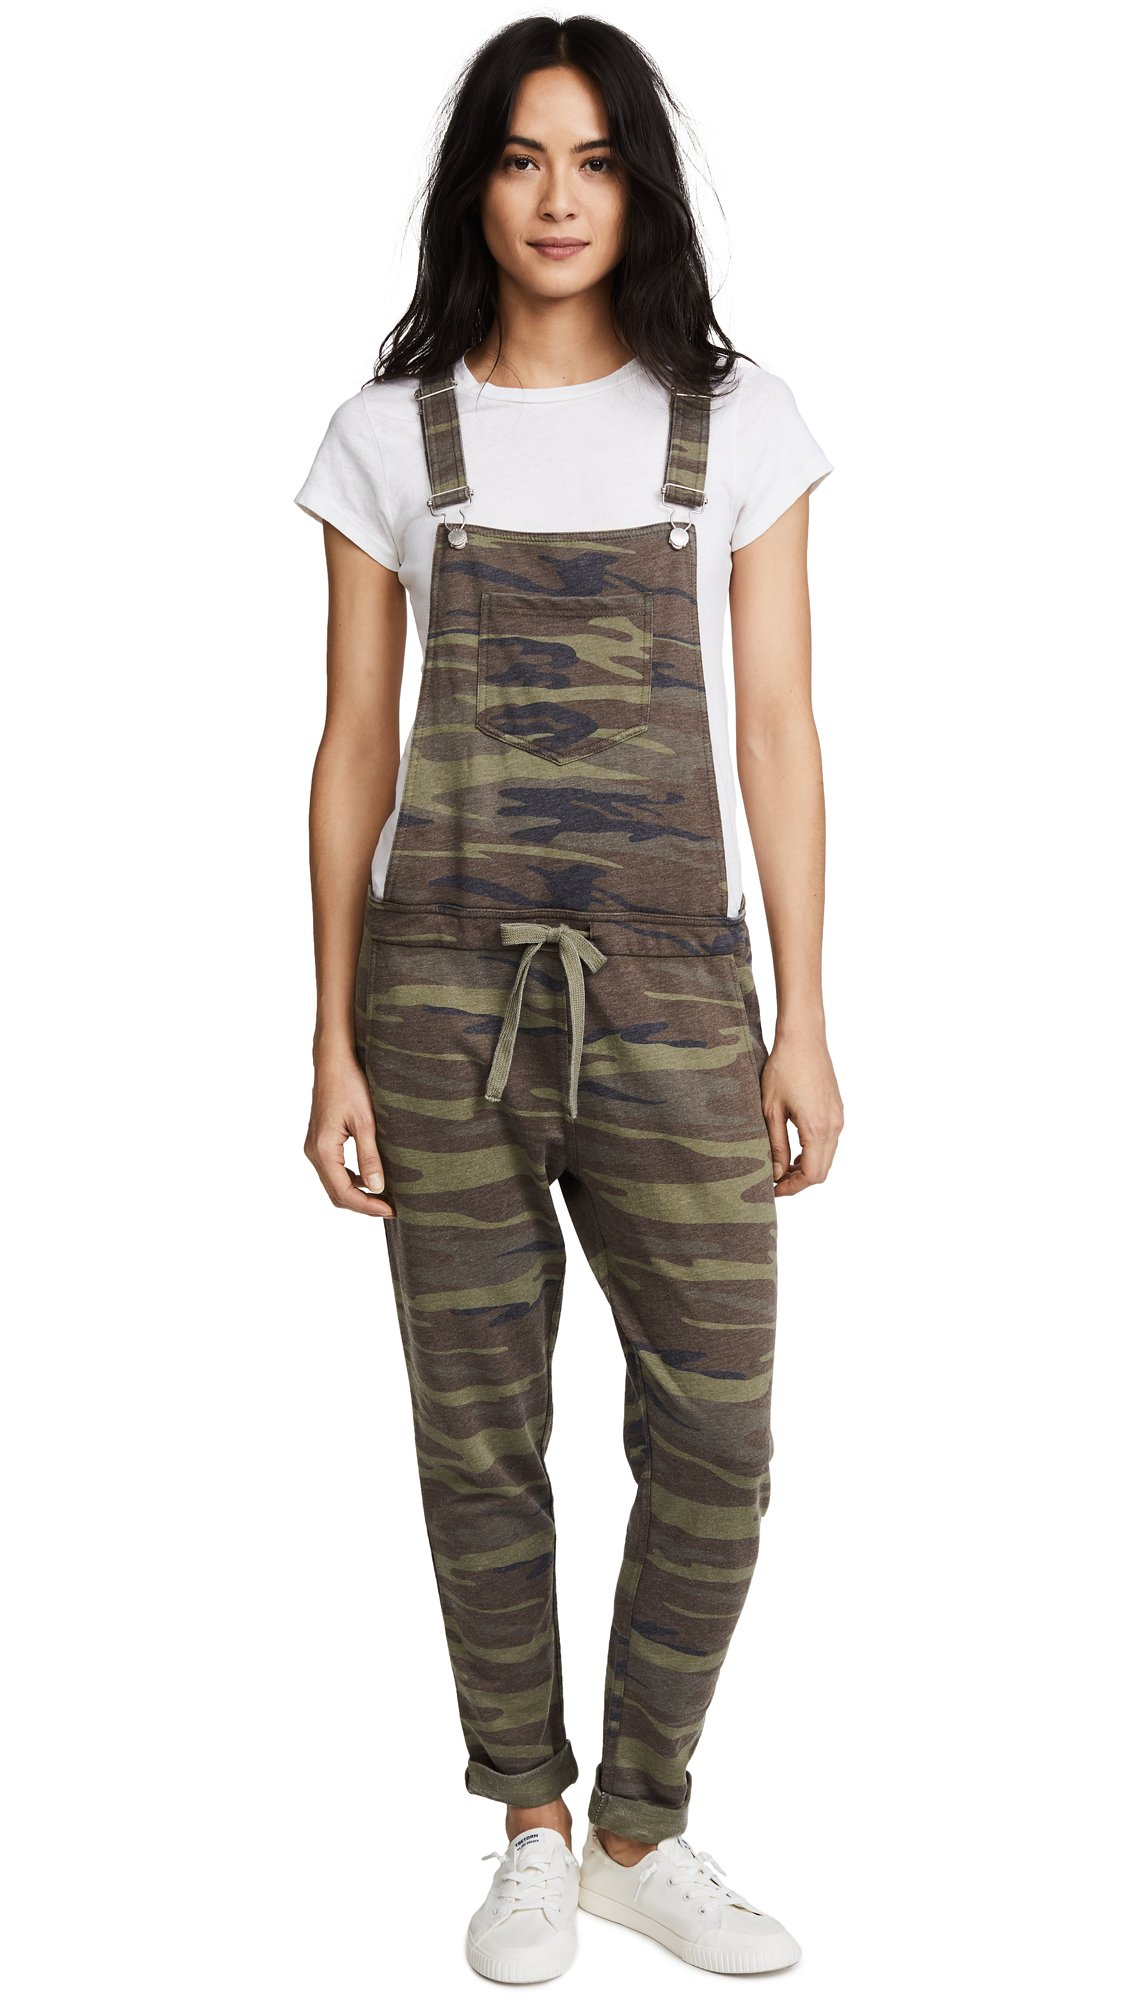 Z SUPPLY Women's The Camo Overalls, Camo Green, Medium